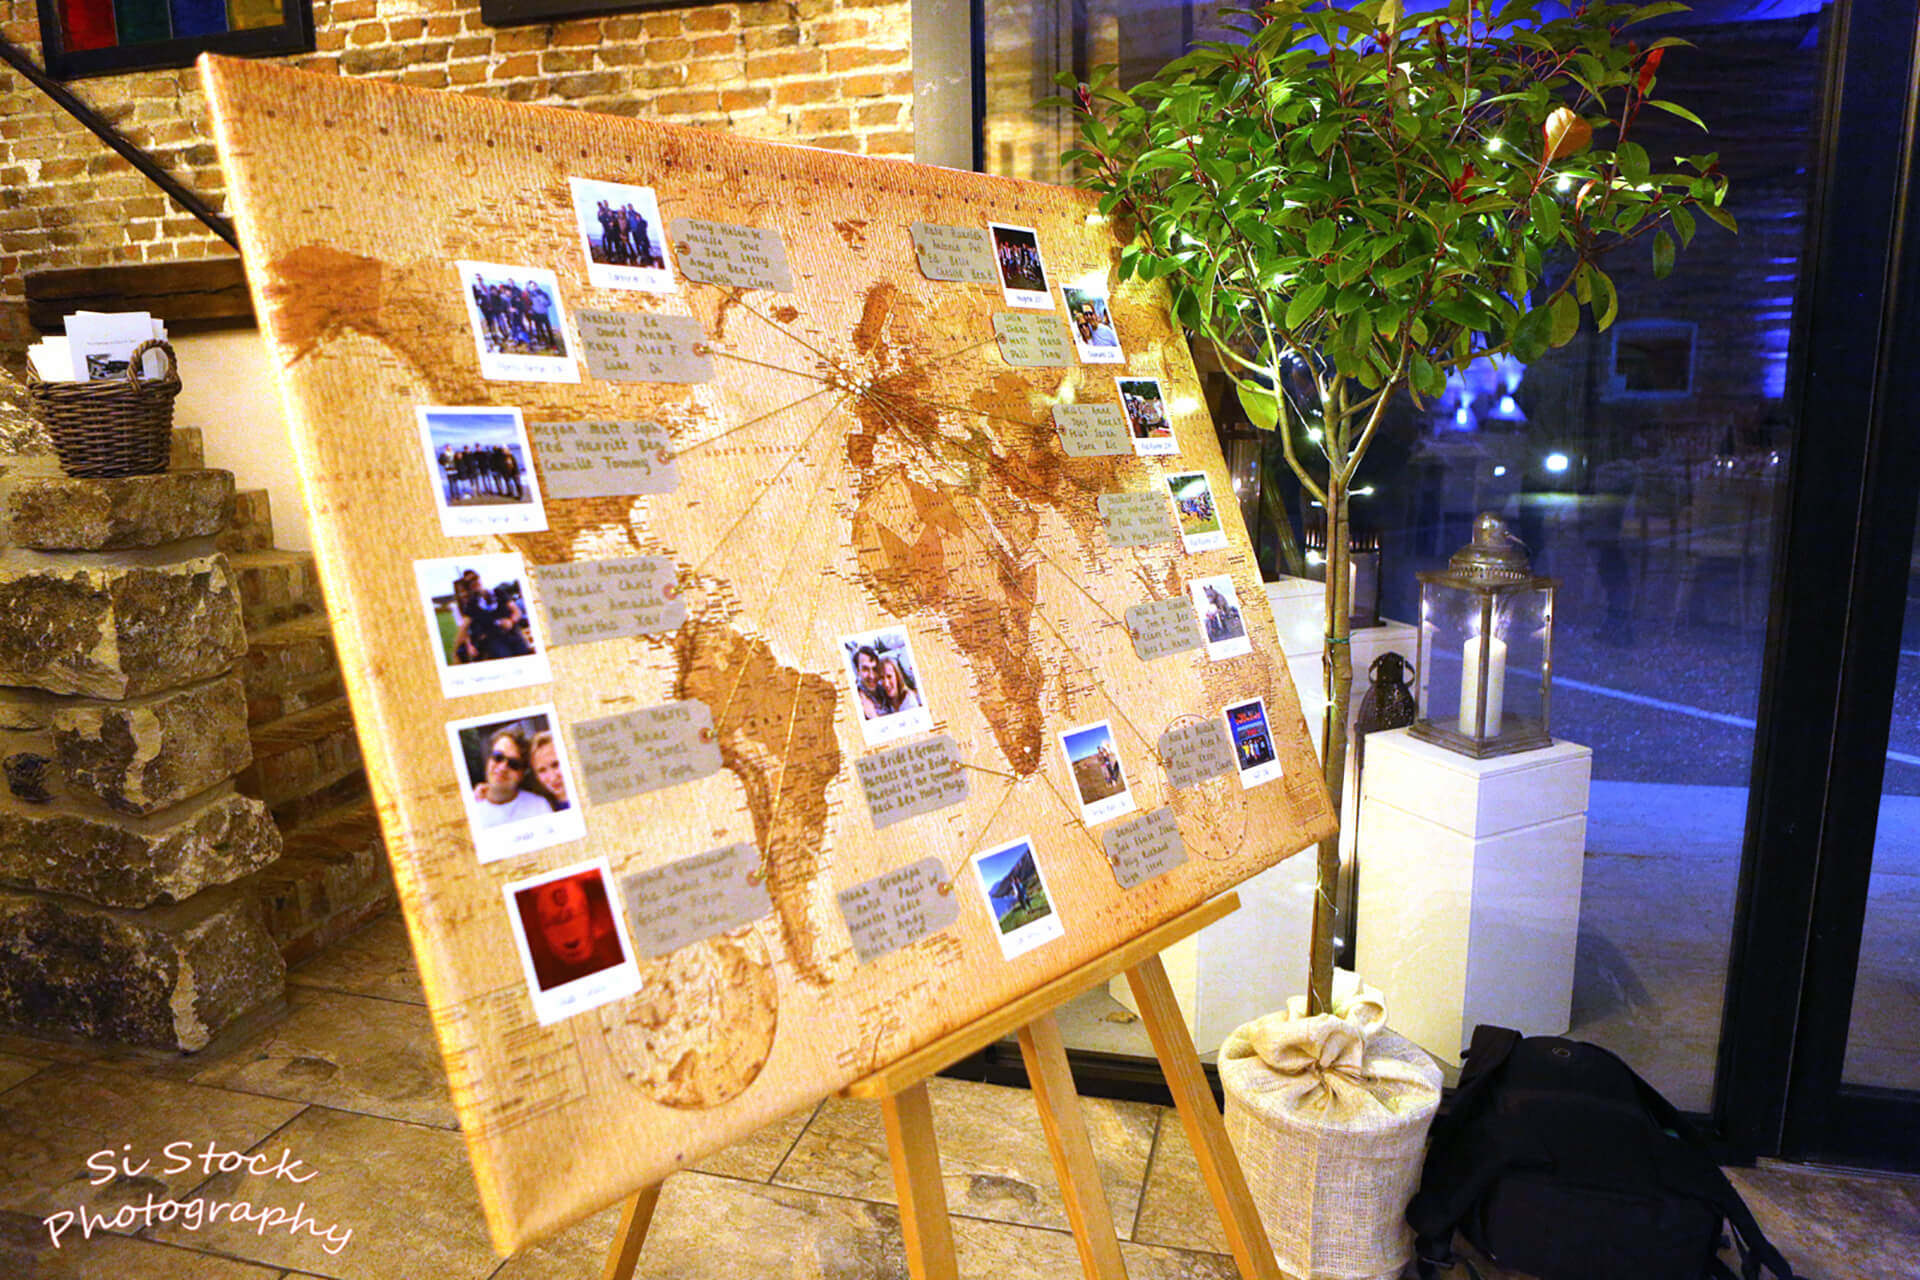 Claire and john's brilliant seating plan tracked their travels around the world. Photo by Simon Stock.